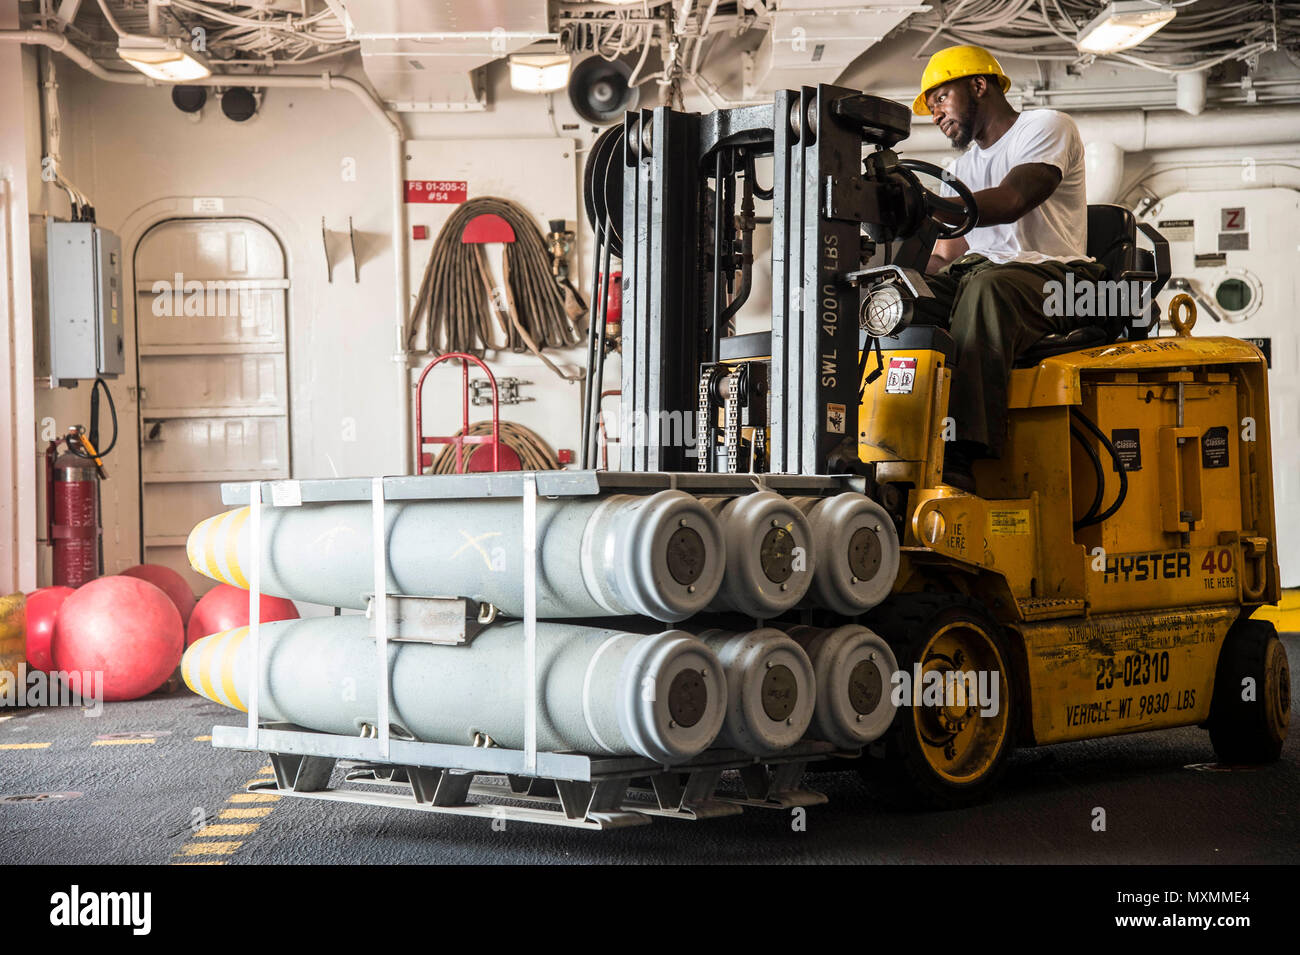 161117-N-RX777-012    ARABIAN GULF (Nov. 17, 2016) Dylan Rios moves ordnance in preparation for an upcoming replenishment-at-sea aboard the fast combat support ship USNS Arctic (T-AOE 8). Arctic is deployed supporting coalition maritime forces ships in the U.S. 5th Fleet area of operations. (U.S. Navy photo by Petty Officer 3rd Class Cole Keller) - Stock Image